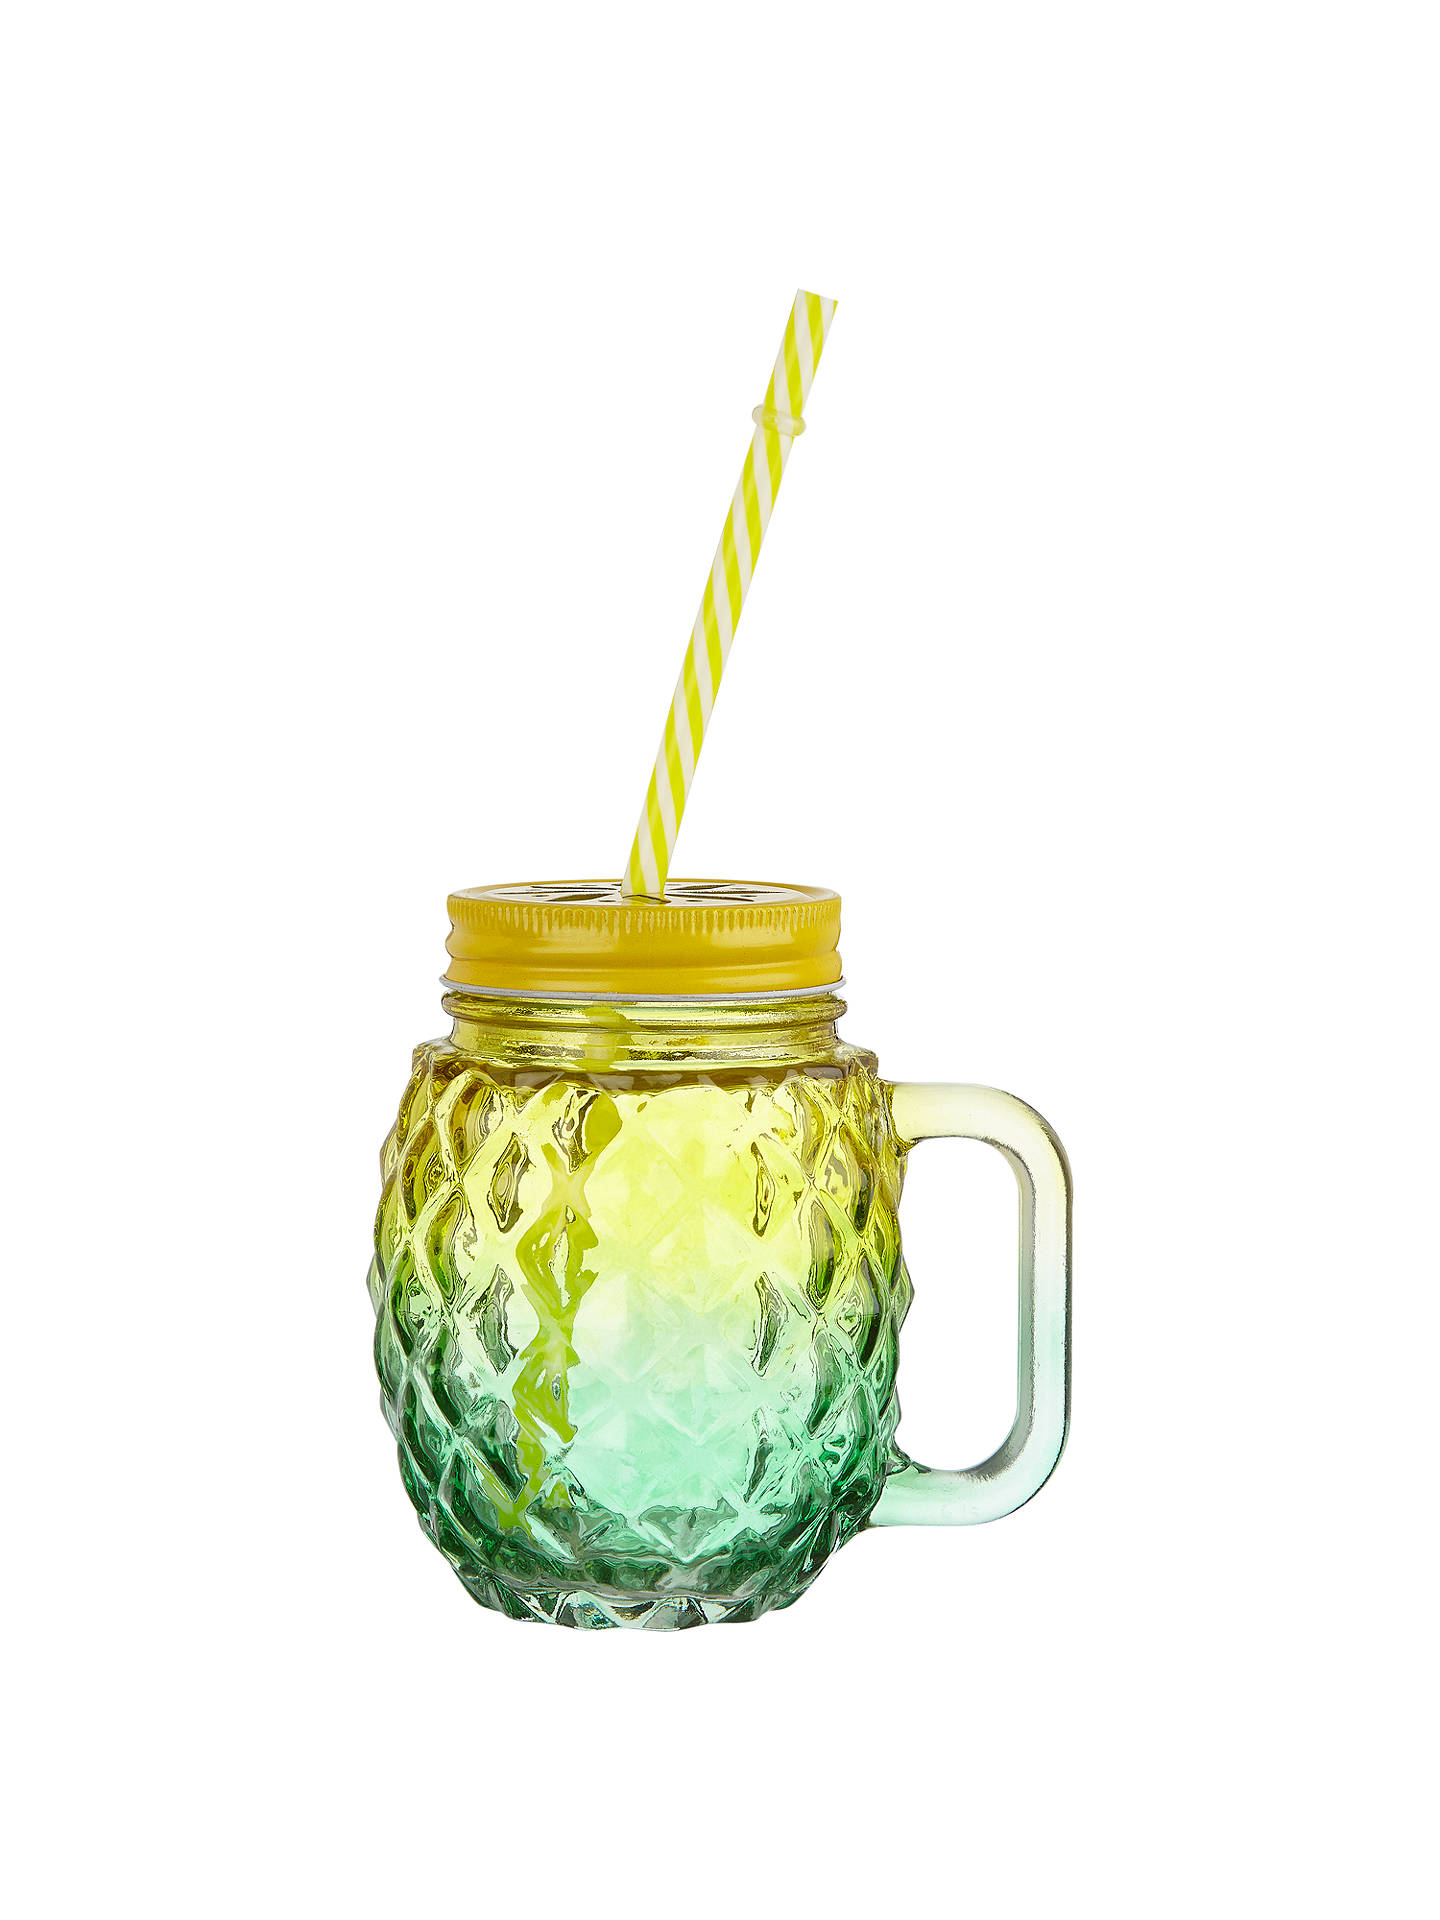 BuyJohn Lewis & Partners Textured Drinking Glass, Yellow Online at johnlewis.com